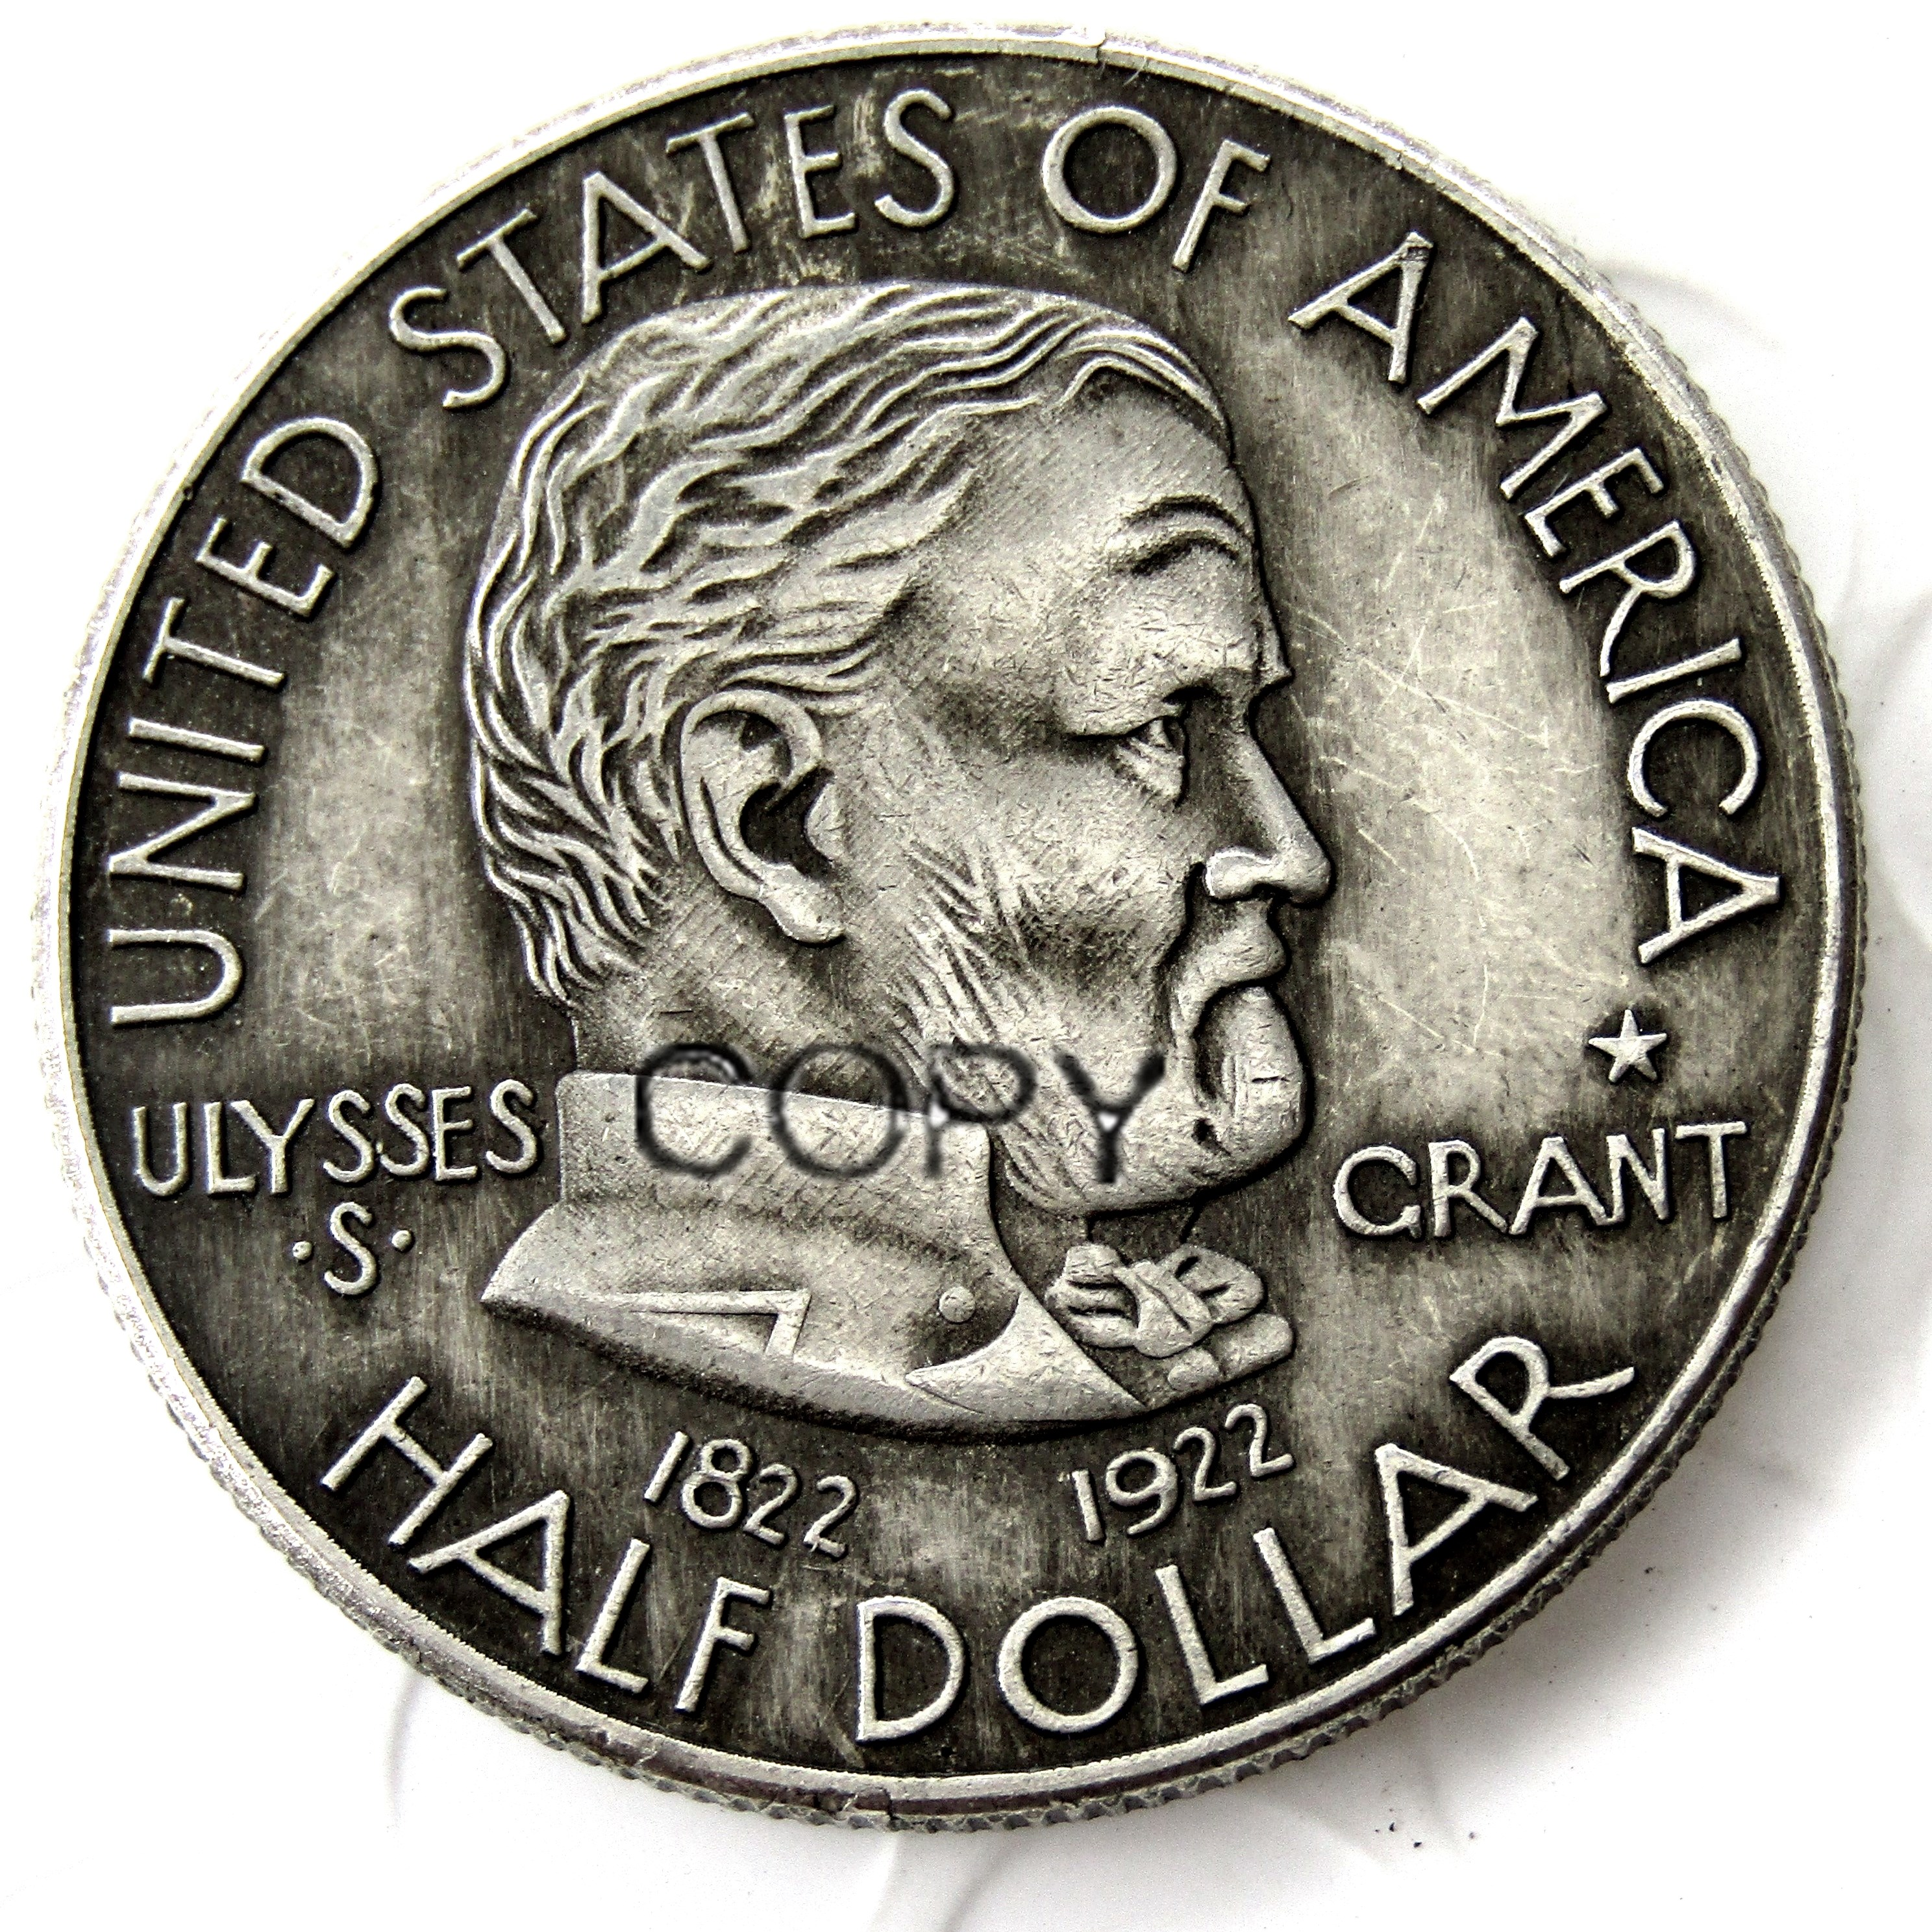 1922 US HALF DOLLAR Silver Plated Copy Coin